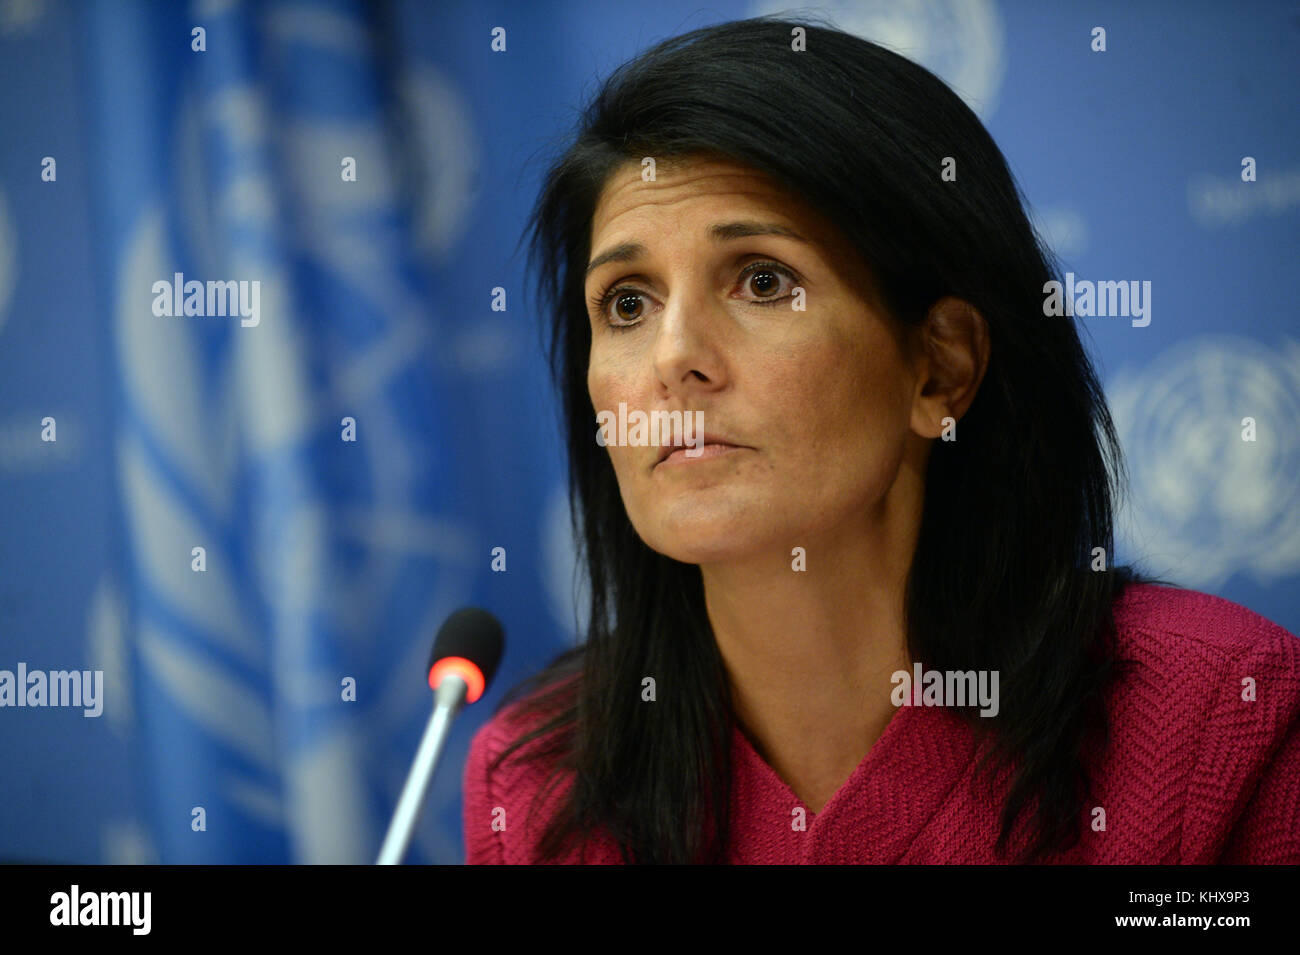 NEW YORK, NY - APRIL 3: U.S. Ambassador to the United Nation Nikki Haley answers questions during a press briefing - Stock Image